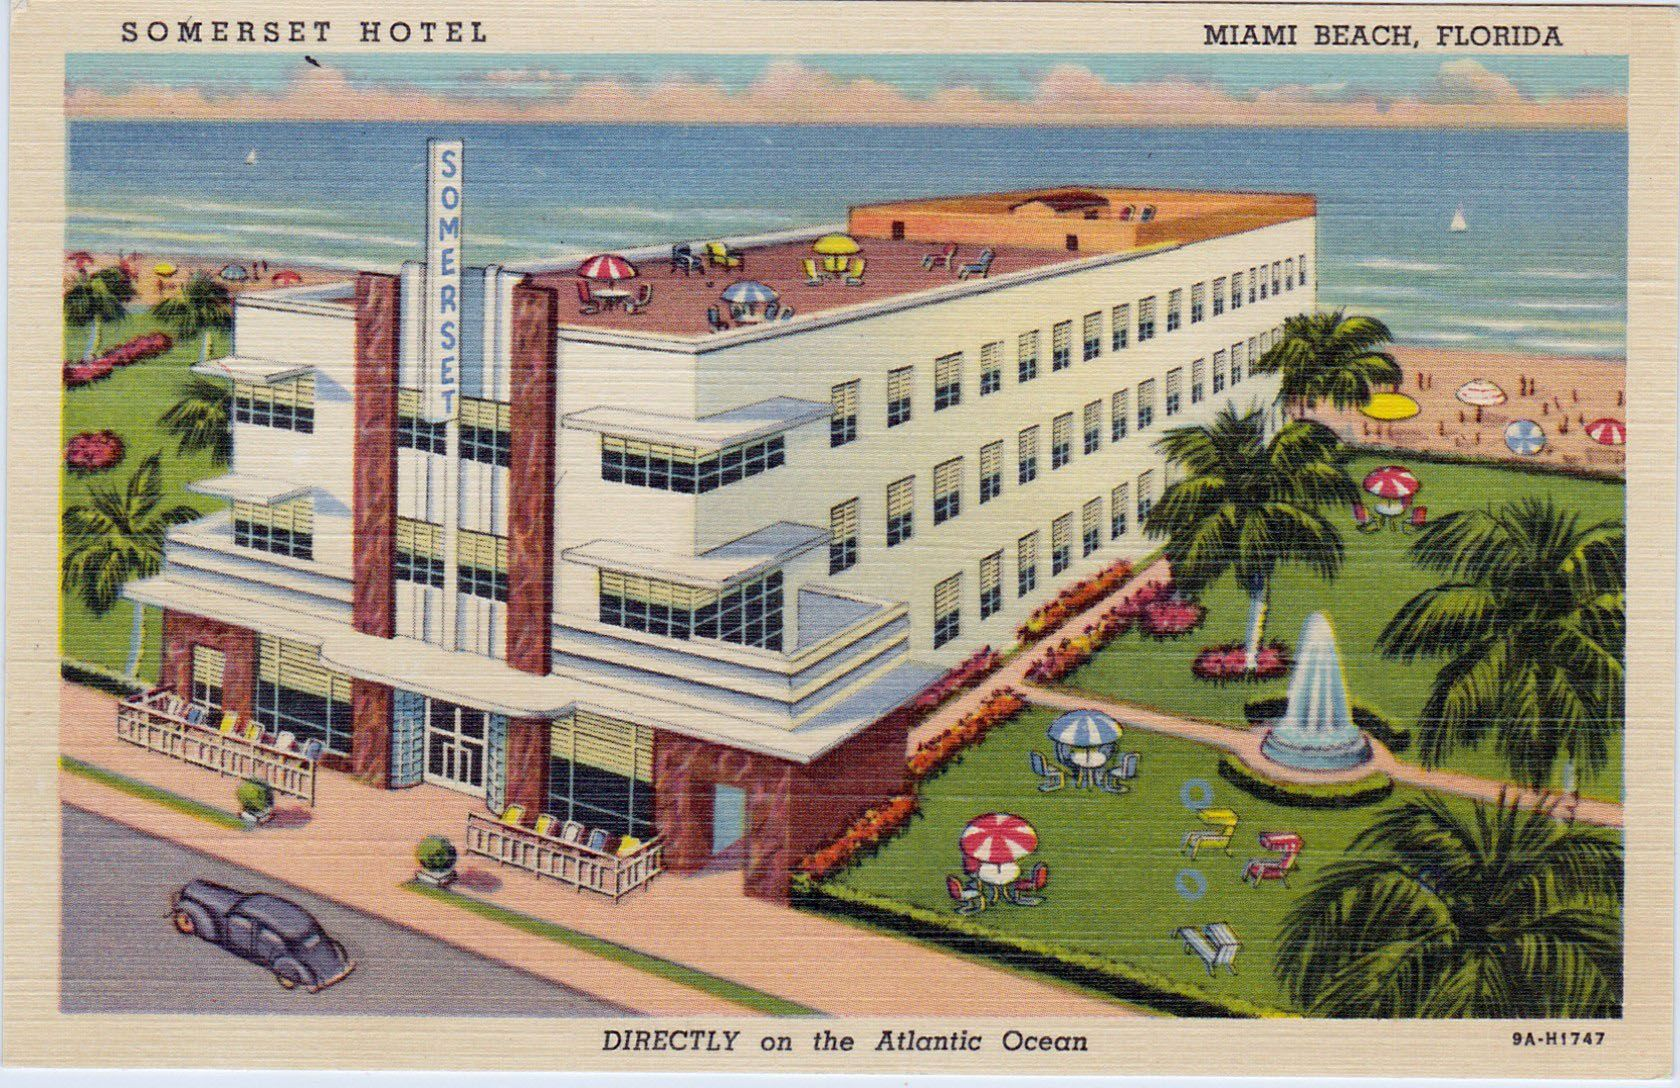 Somerset Hotel 335 Ocean Drive 1939 Features Surf Bathing From Your Room Without Crossing The Street